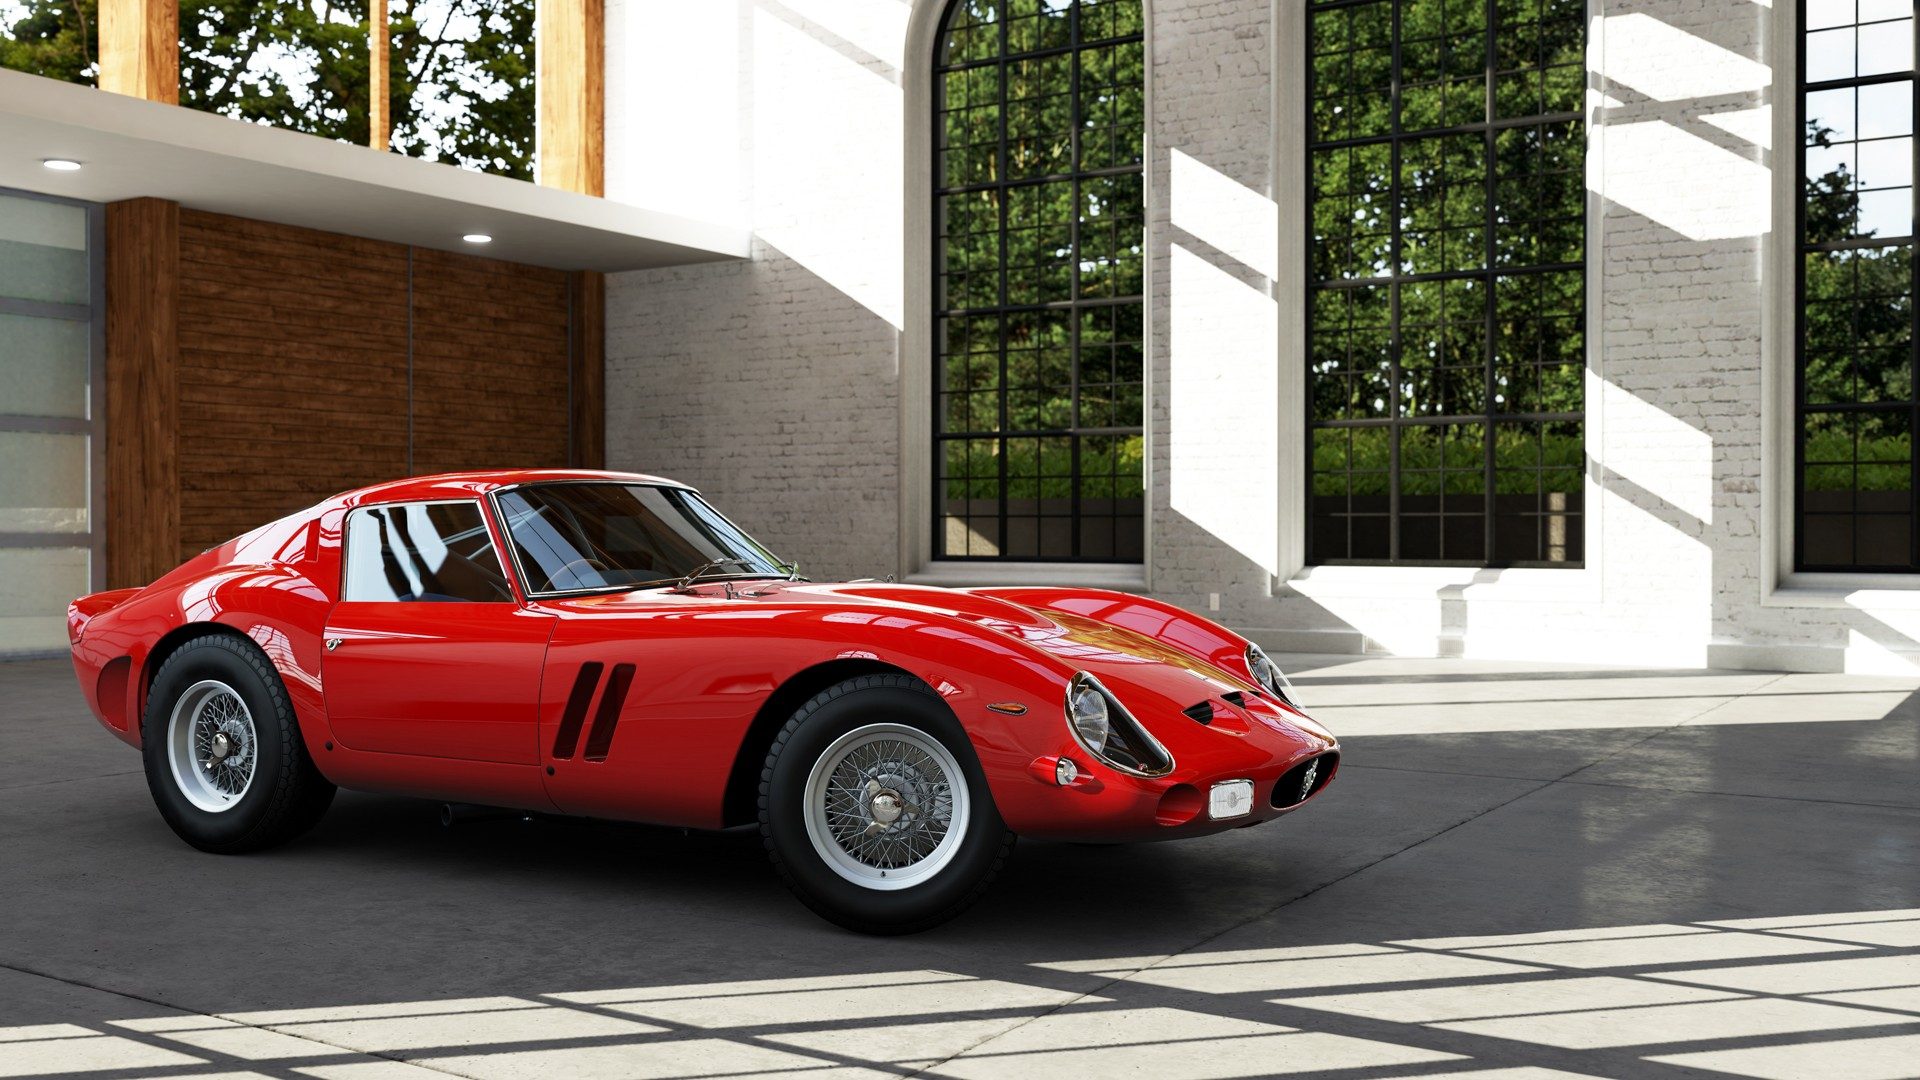 Ferrari 250 GTO Wallpaper 08   [1920x1080] 1920x1080